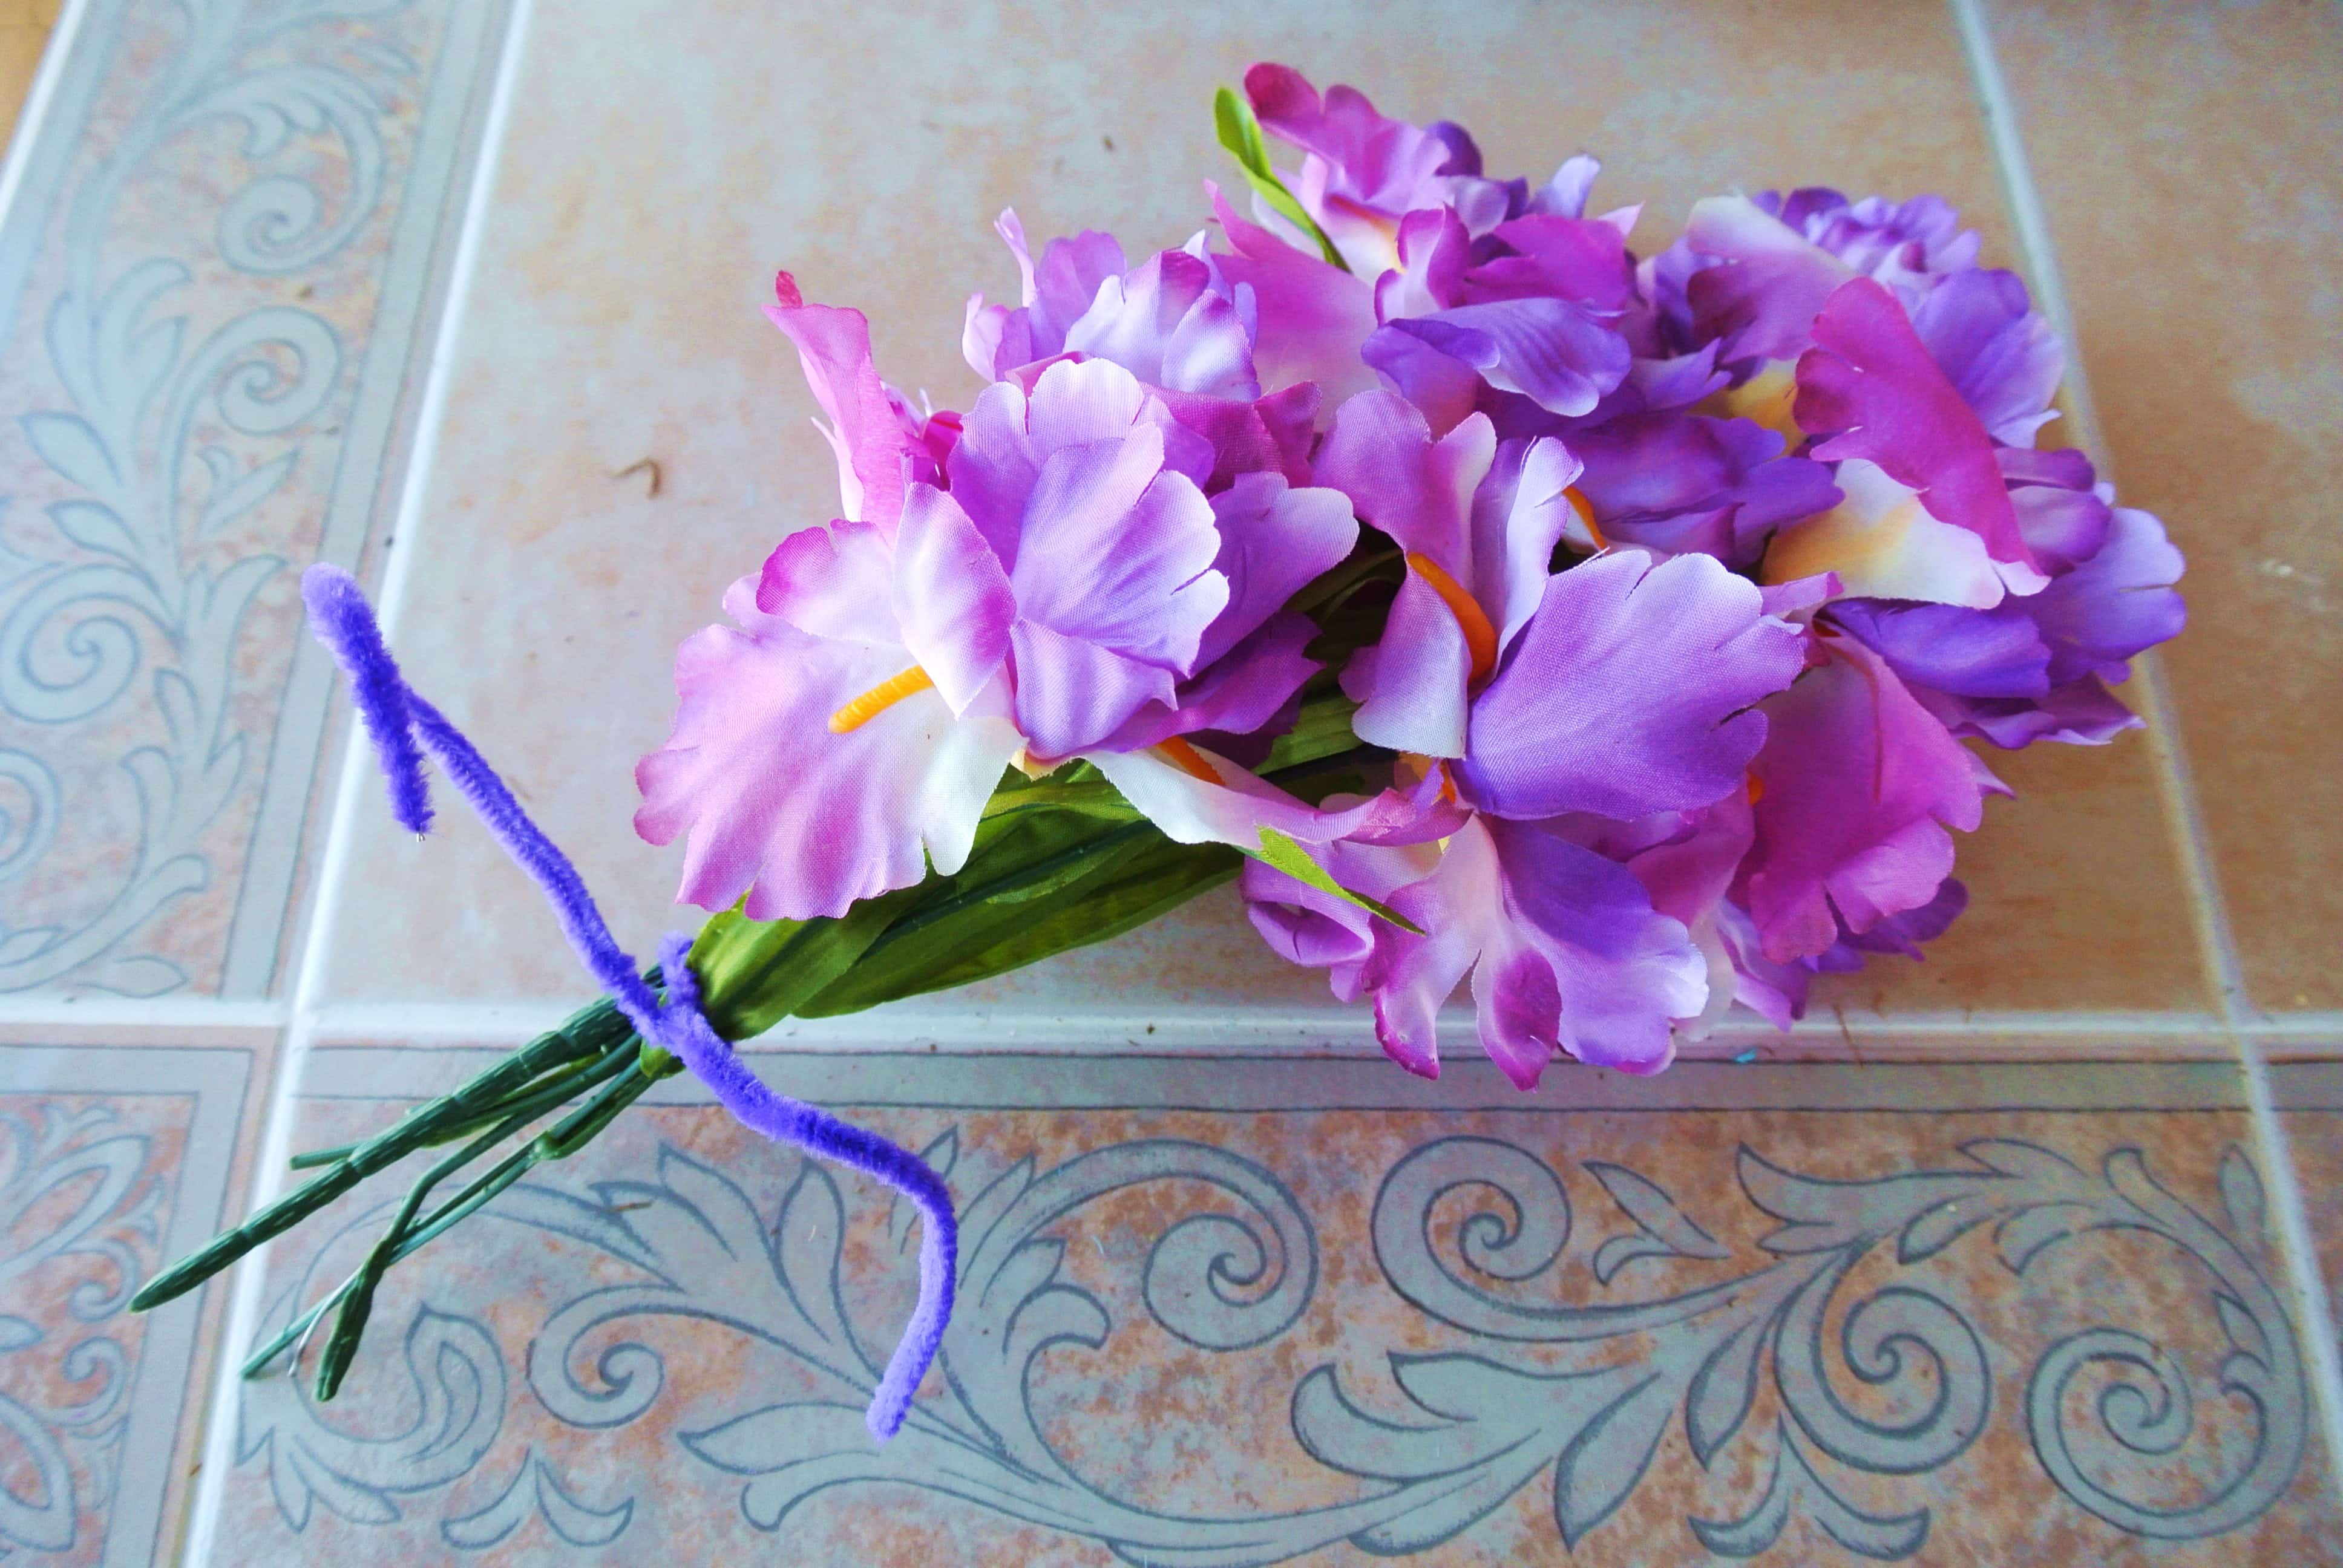 Tie ends of faux purple flowers tightly with a pipe cleaner